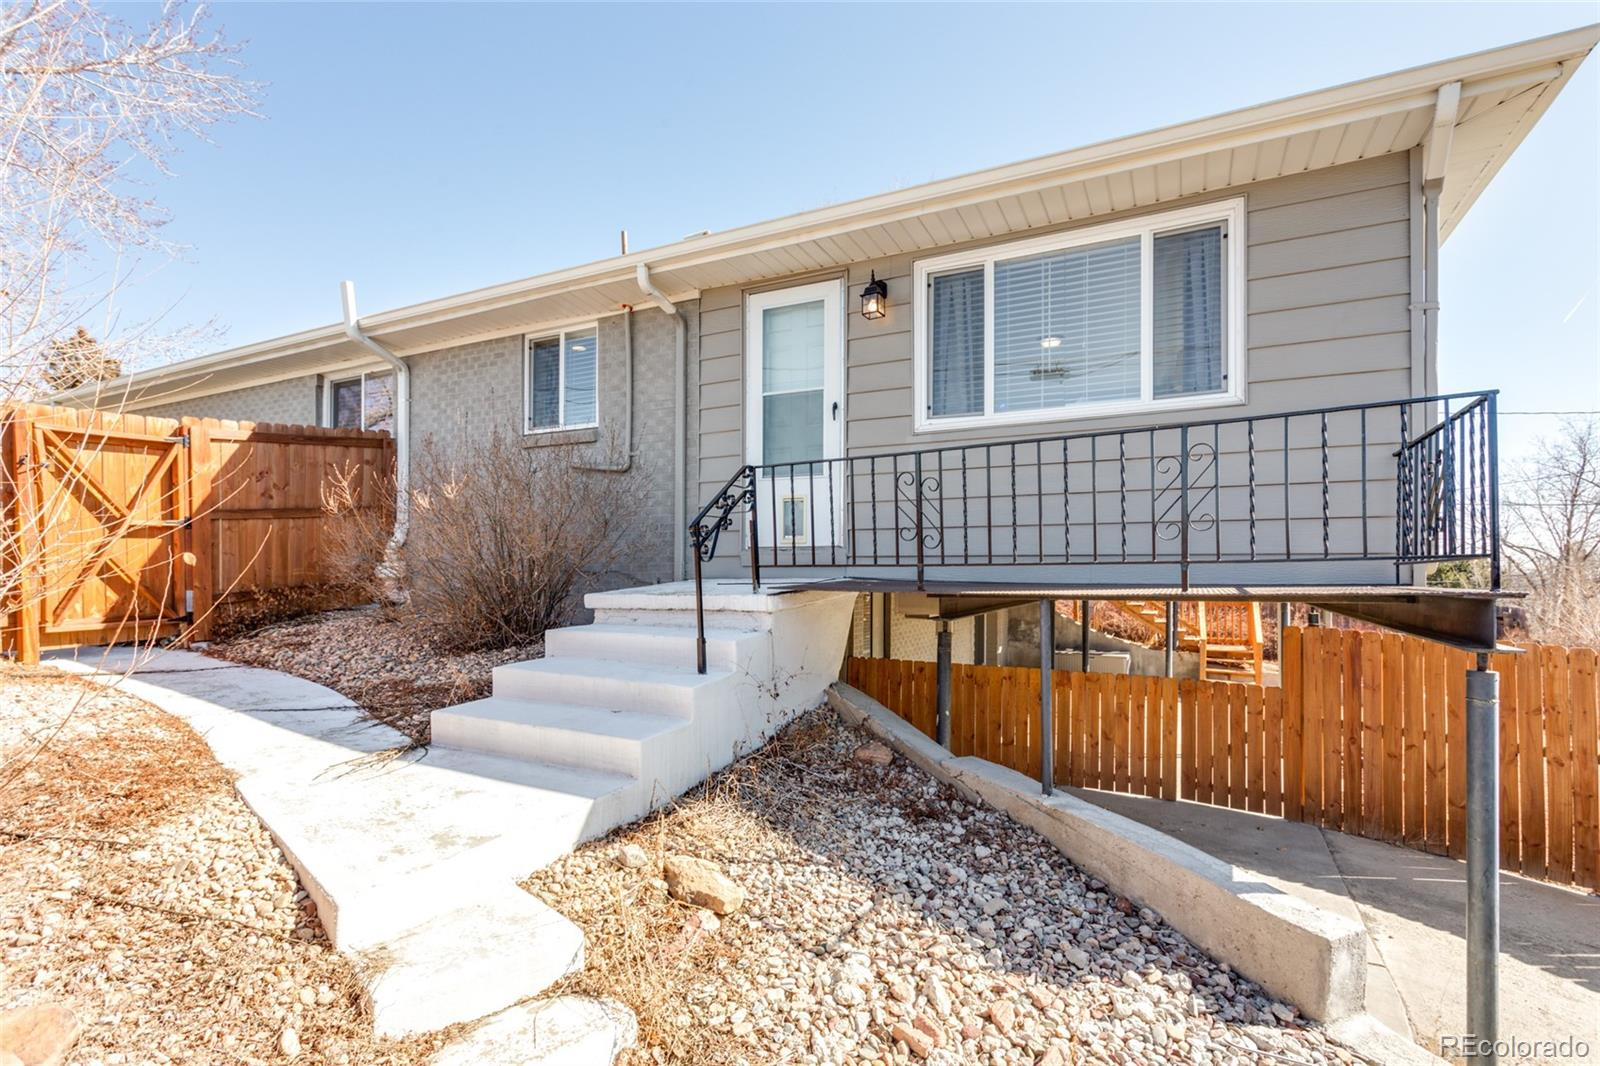 MLS# 4969690 - 27 - 9570 W 54th Place, Arvada, CO 80002